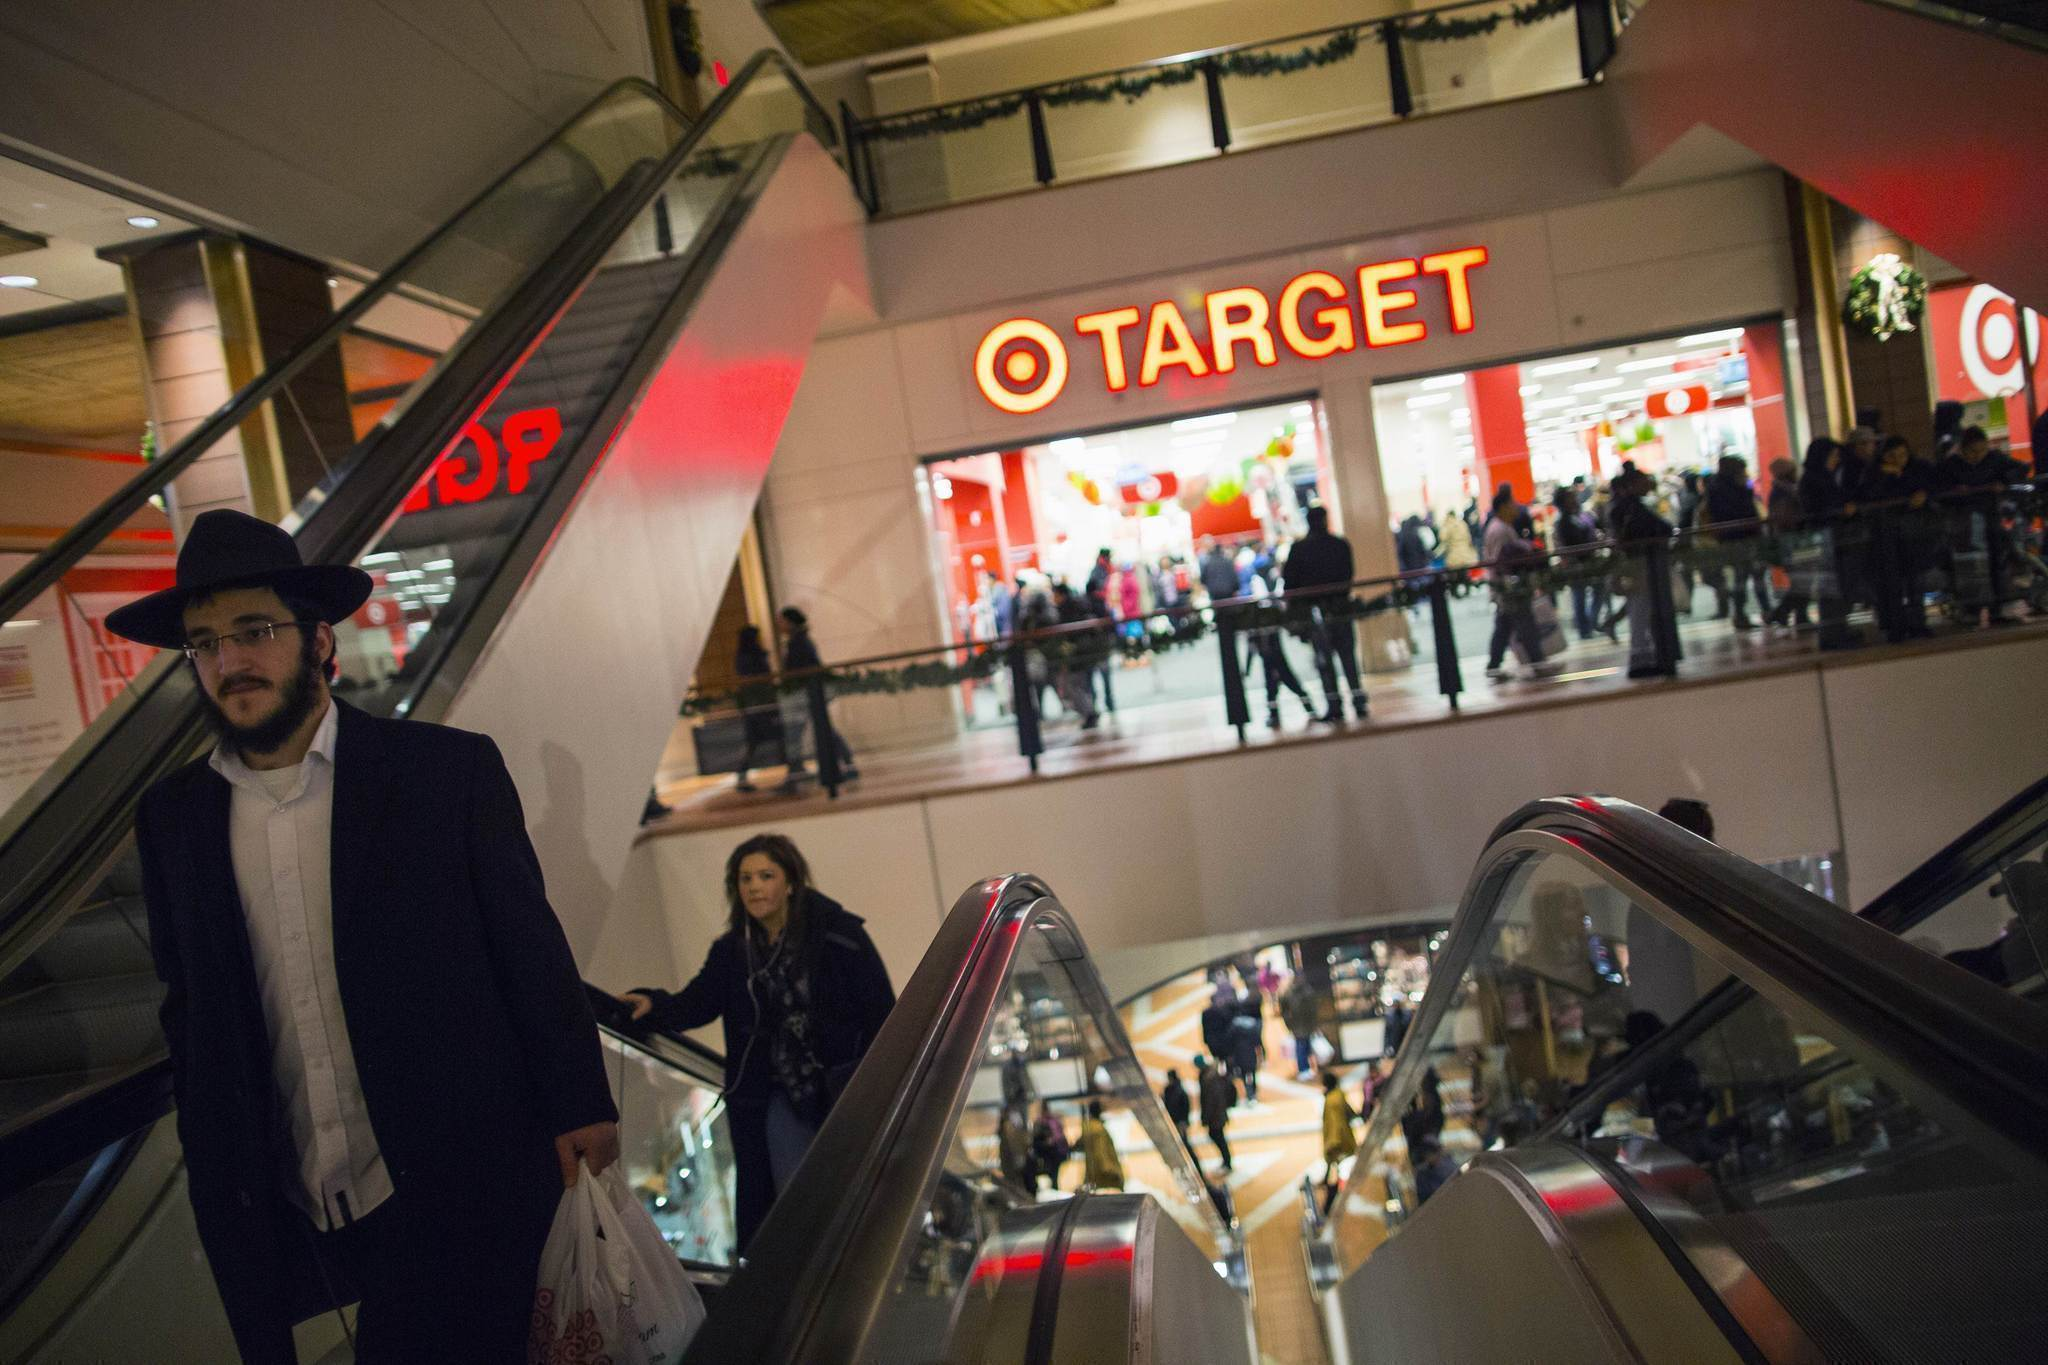 Shoppers are seen at a Target store during Black Friday sales in the Brooklyn borough of New York, in this November 29, 2013, file photo. Target Corp said data from about 40 million credit and debit cards might have been stolen from shoppers at its stores during the first three weeks of the holiday season, in the second-largest card breach at a U.S. Retailer.